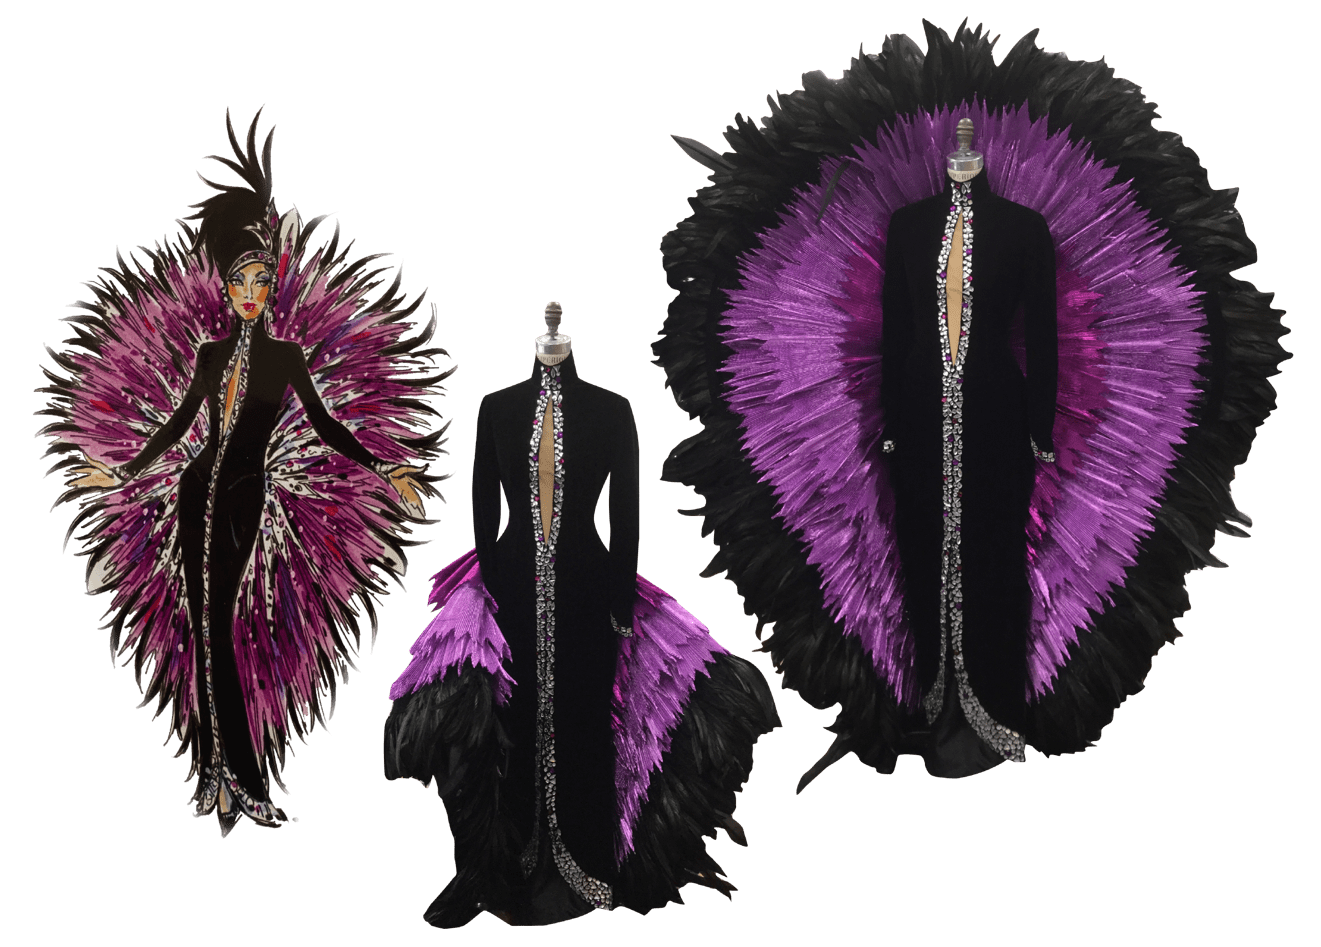 Cher purple and black feather costume collage